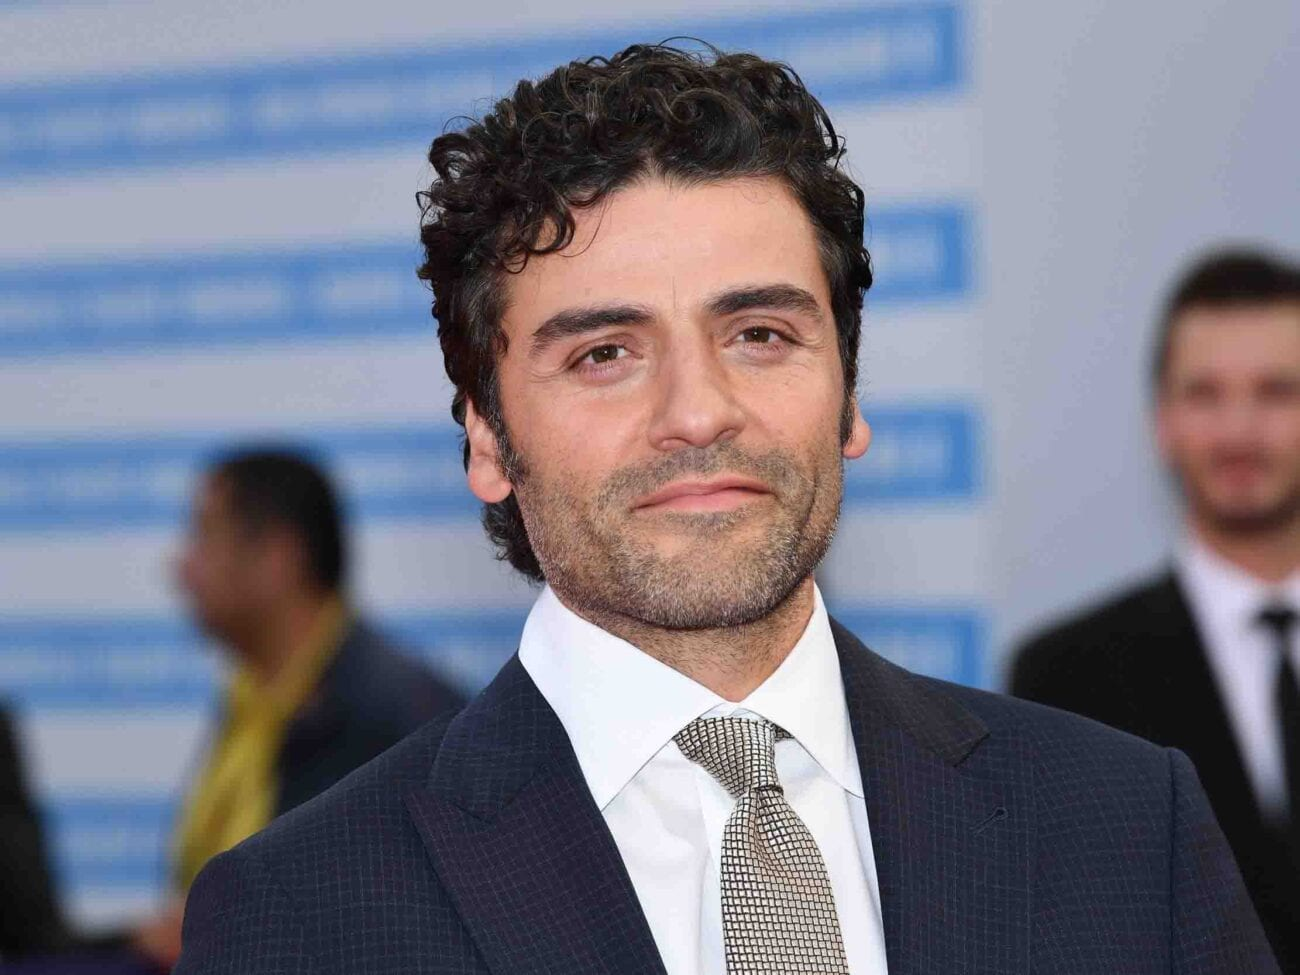 Oscar Isaac made it big in the new 'Star Wars' trilogy, but what's next for him? Here's what we know about his role in 'Moon Knight'.